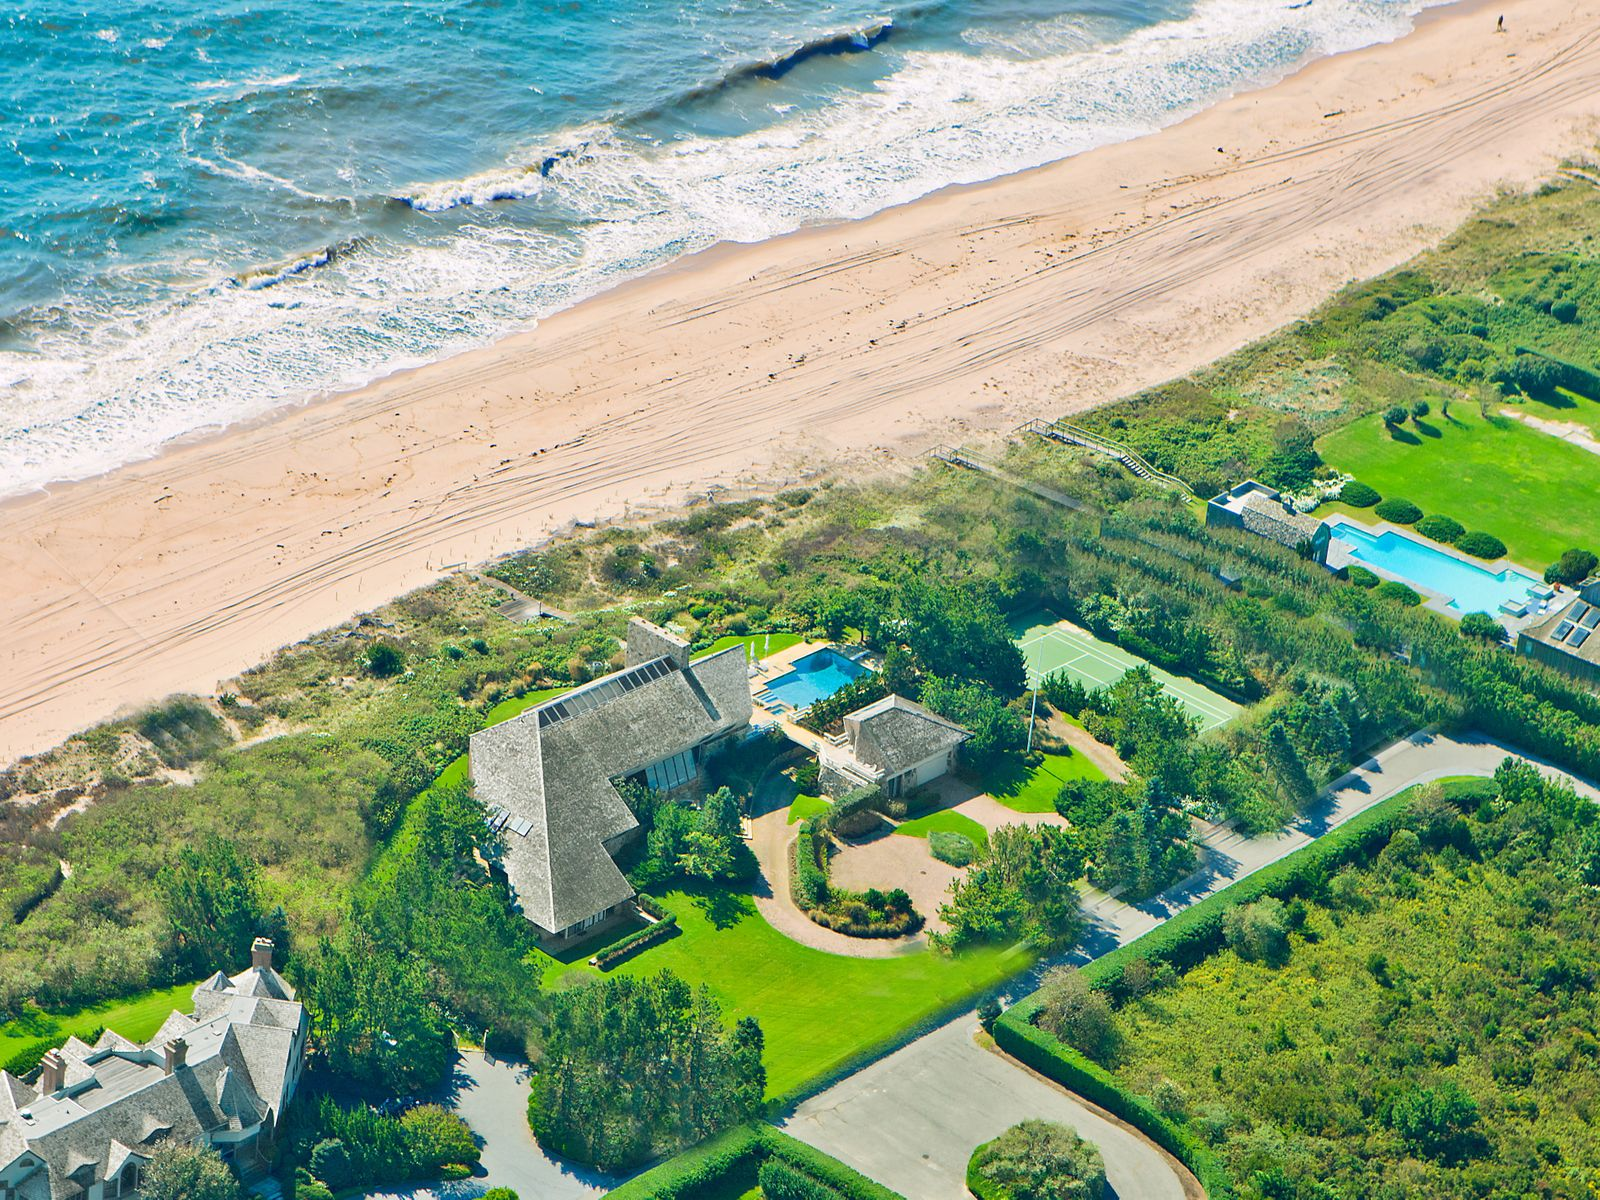 Norman Jaffe Oceanfront Modern, Southampton NY Single Family Home - Hamptons Real Estate